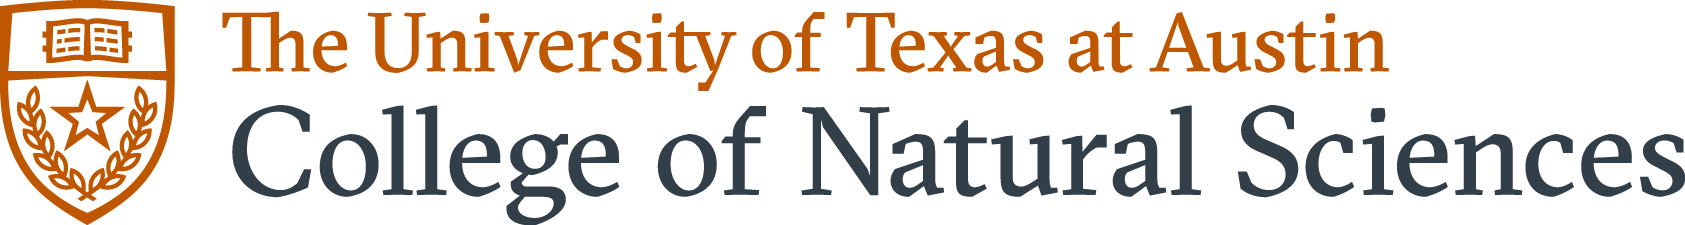 The University of Texas at Austin - College of Natural Sciences